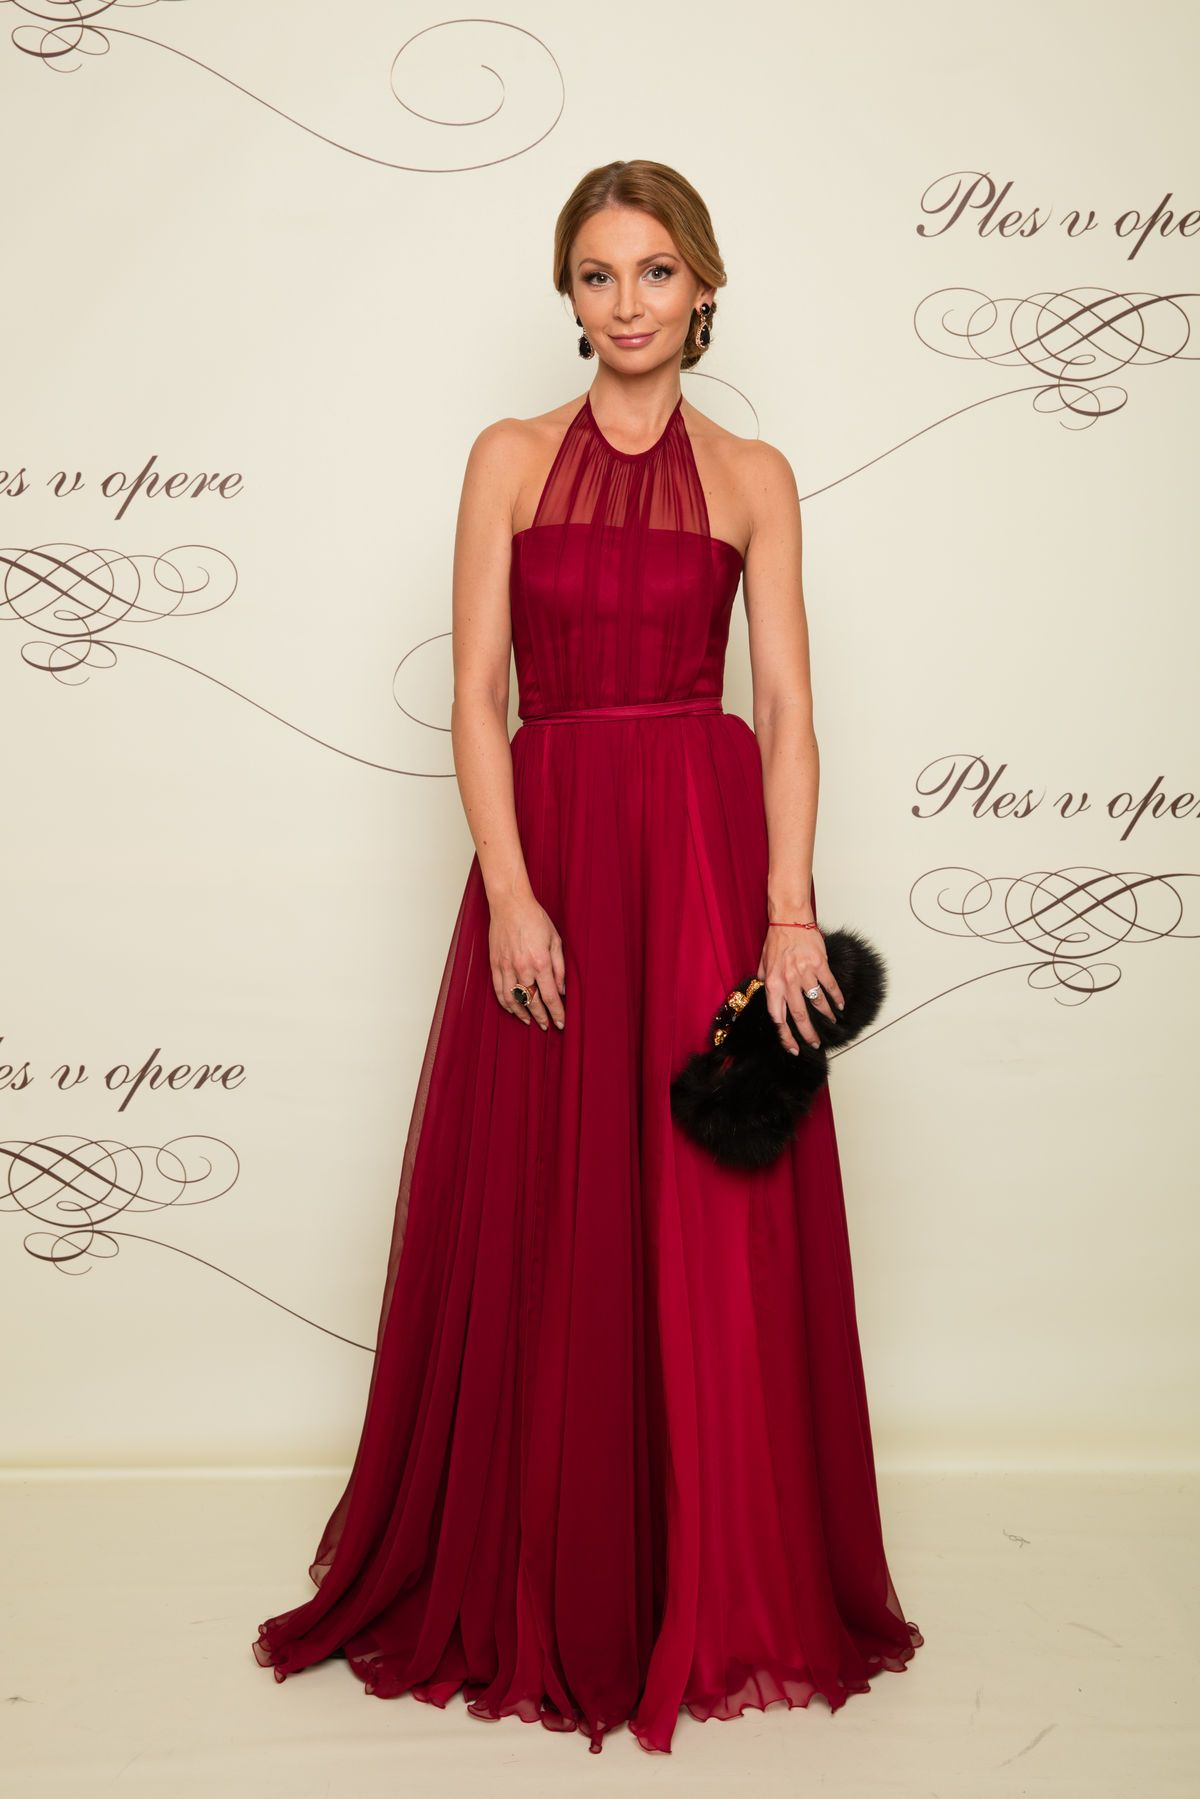 ples v opere fashion stars red carpet pinterest red